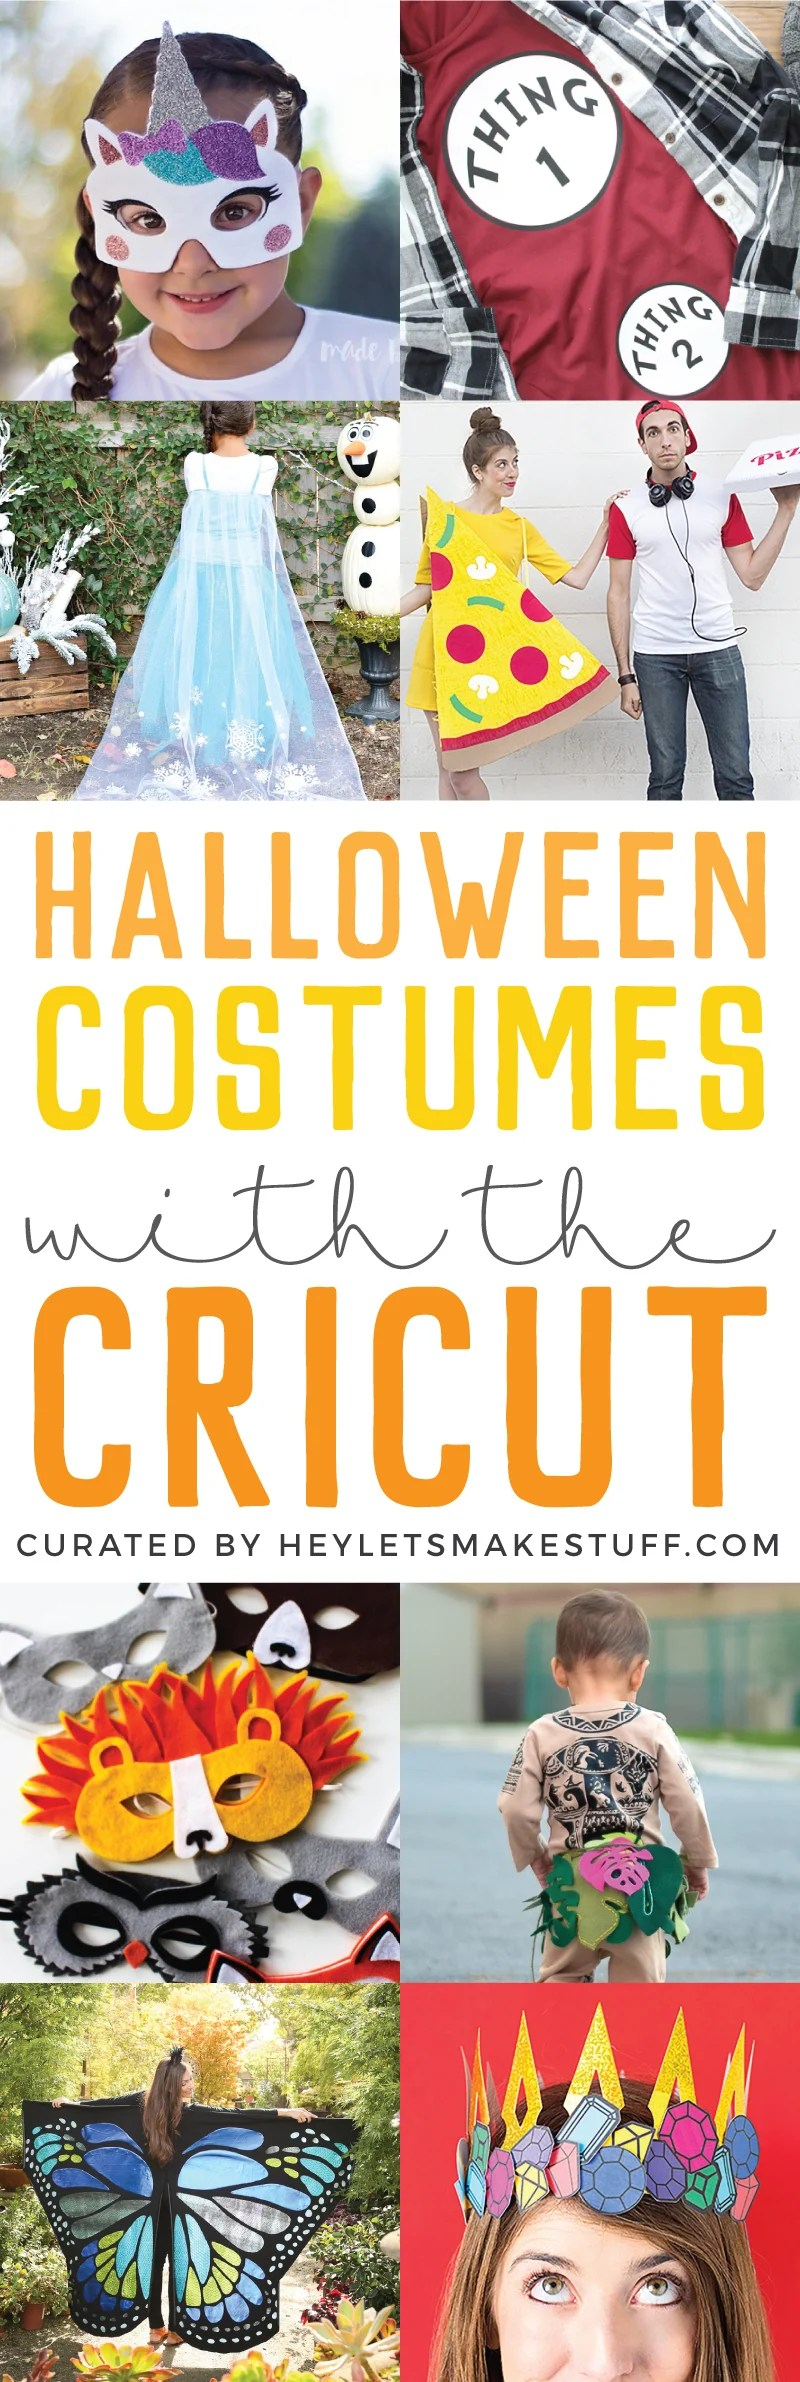 Looking for a way to create an amazing costume? Get out your Cricut and follow one of these Cricut costume tutorials! So many unique and fun costumes made with the Cricut. via @heyletsmakestuf